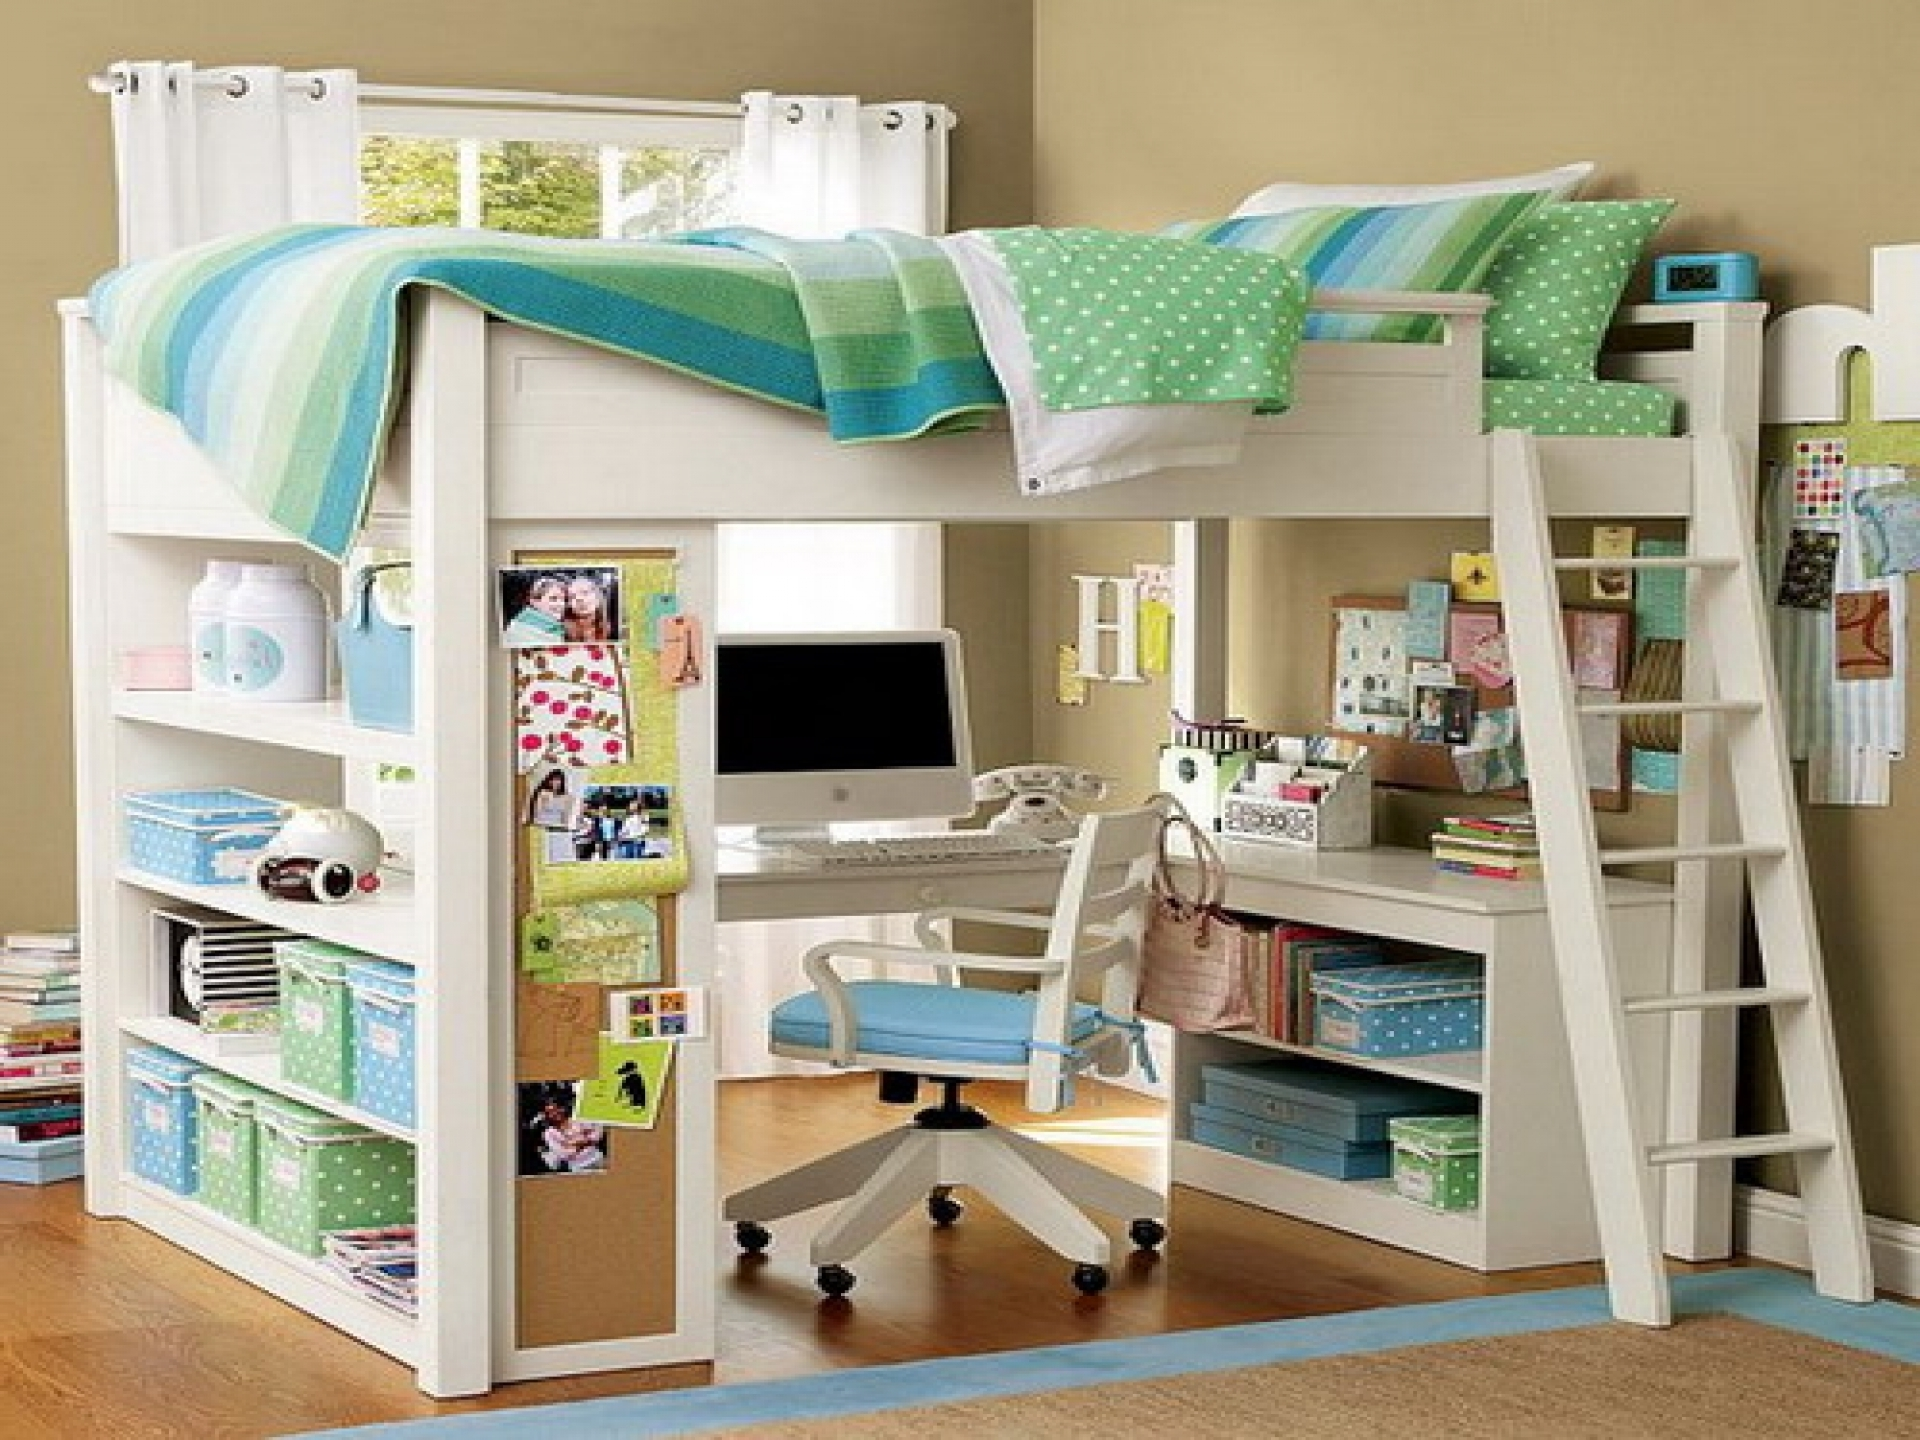 How to Put up Two Kids in e Room kidsbunkbed